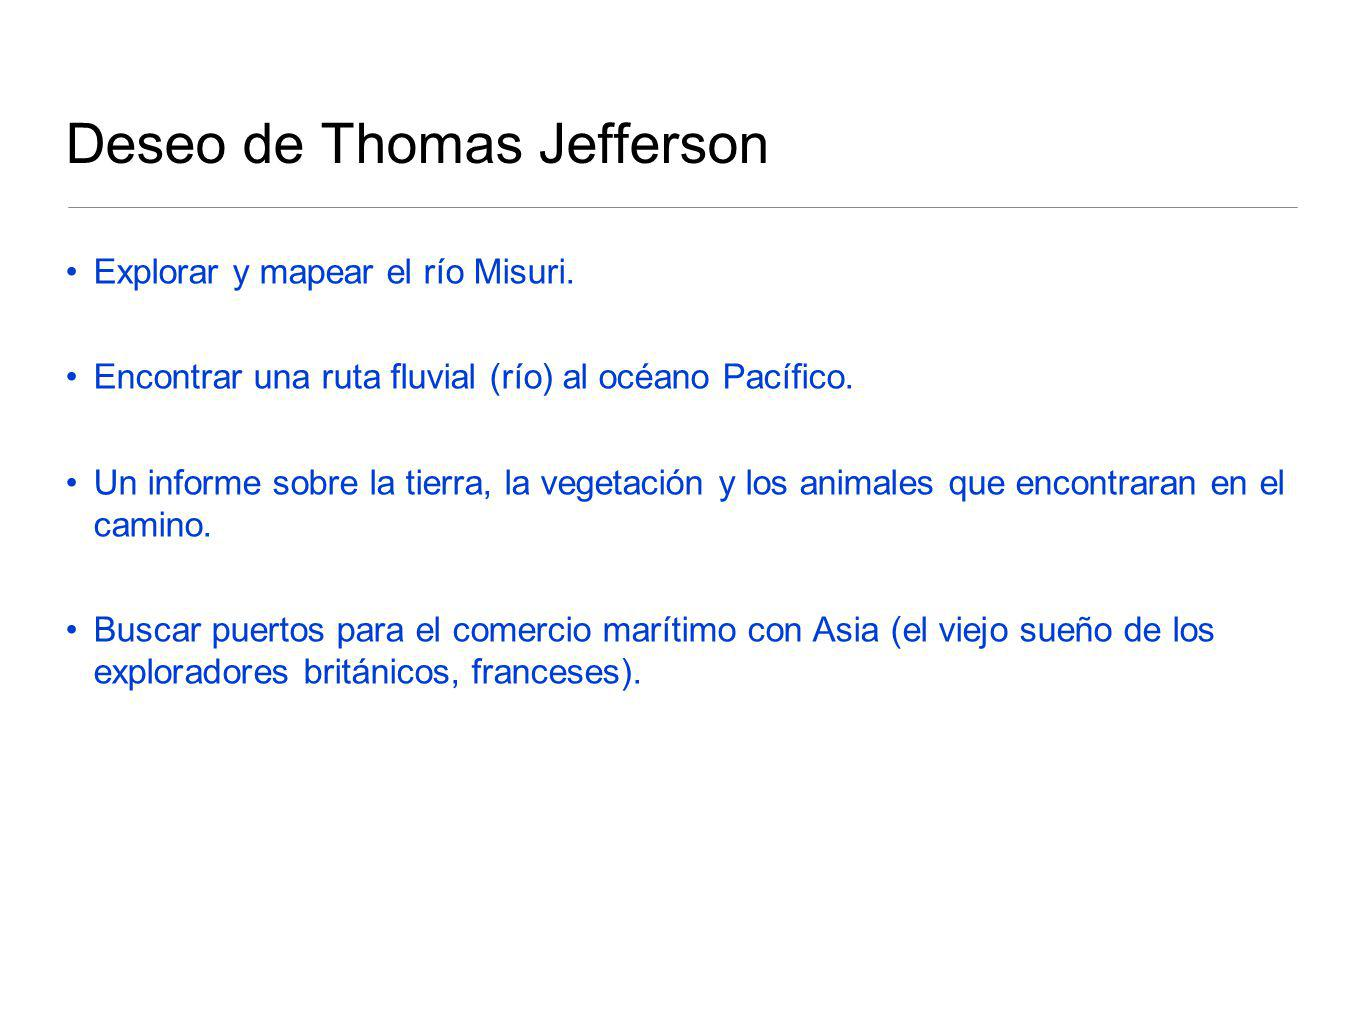 Deseo de Thomas Jefferson